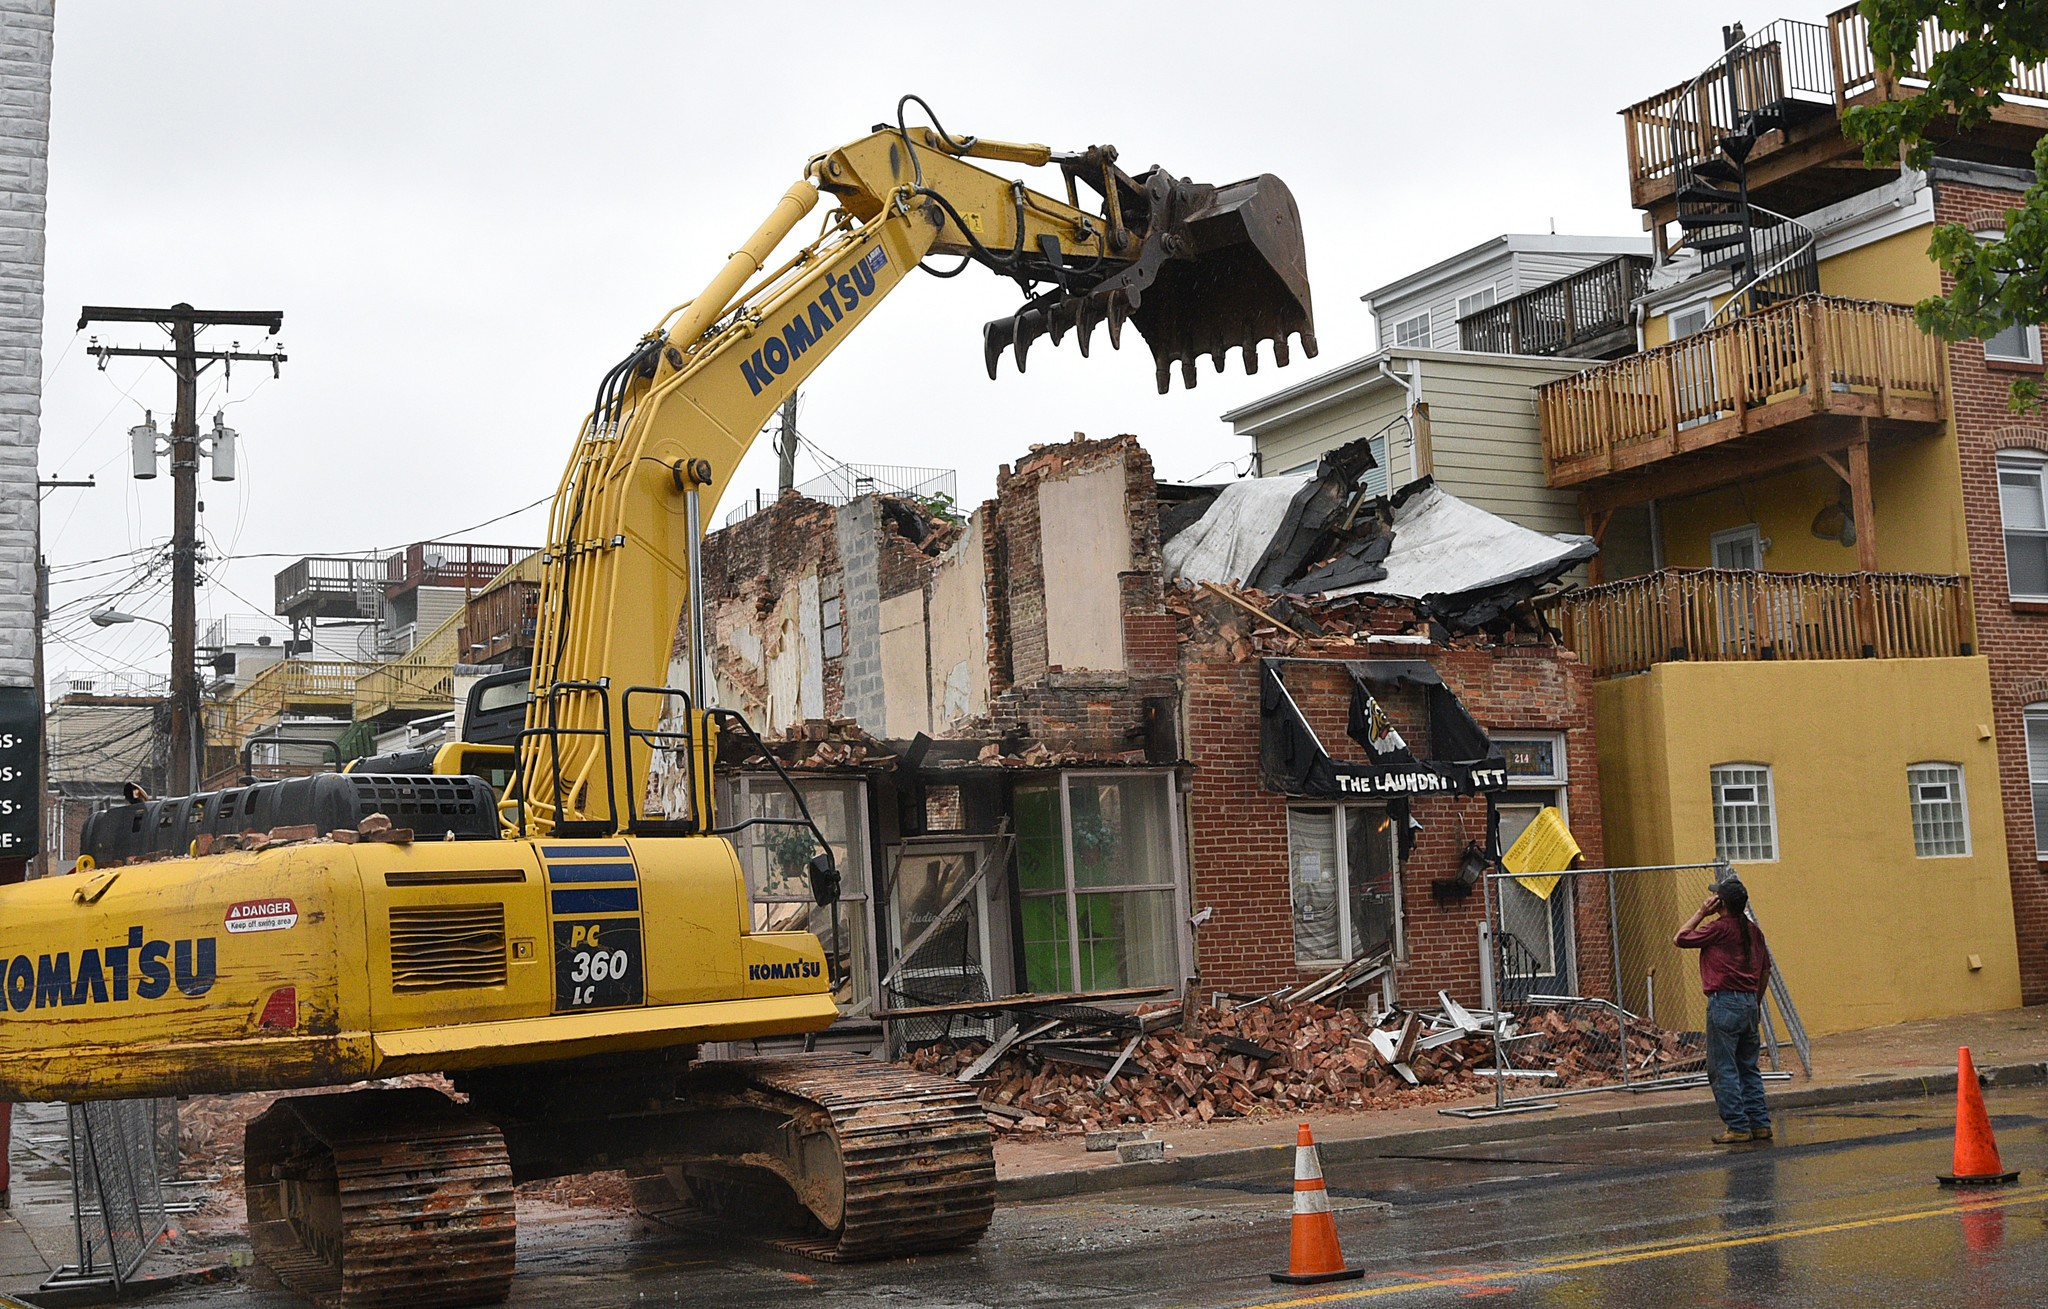 Methods of demolition